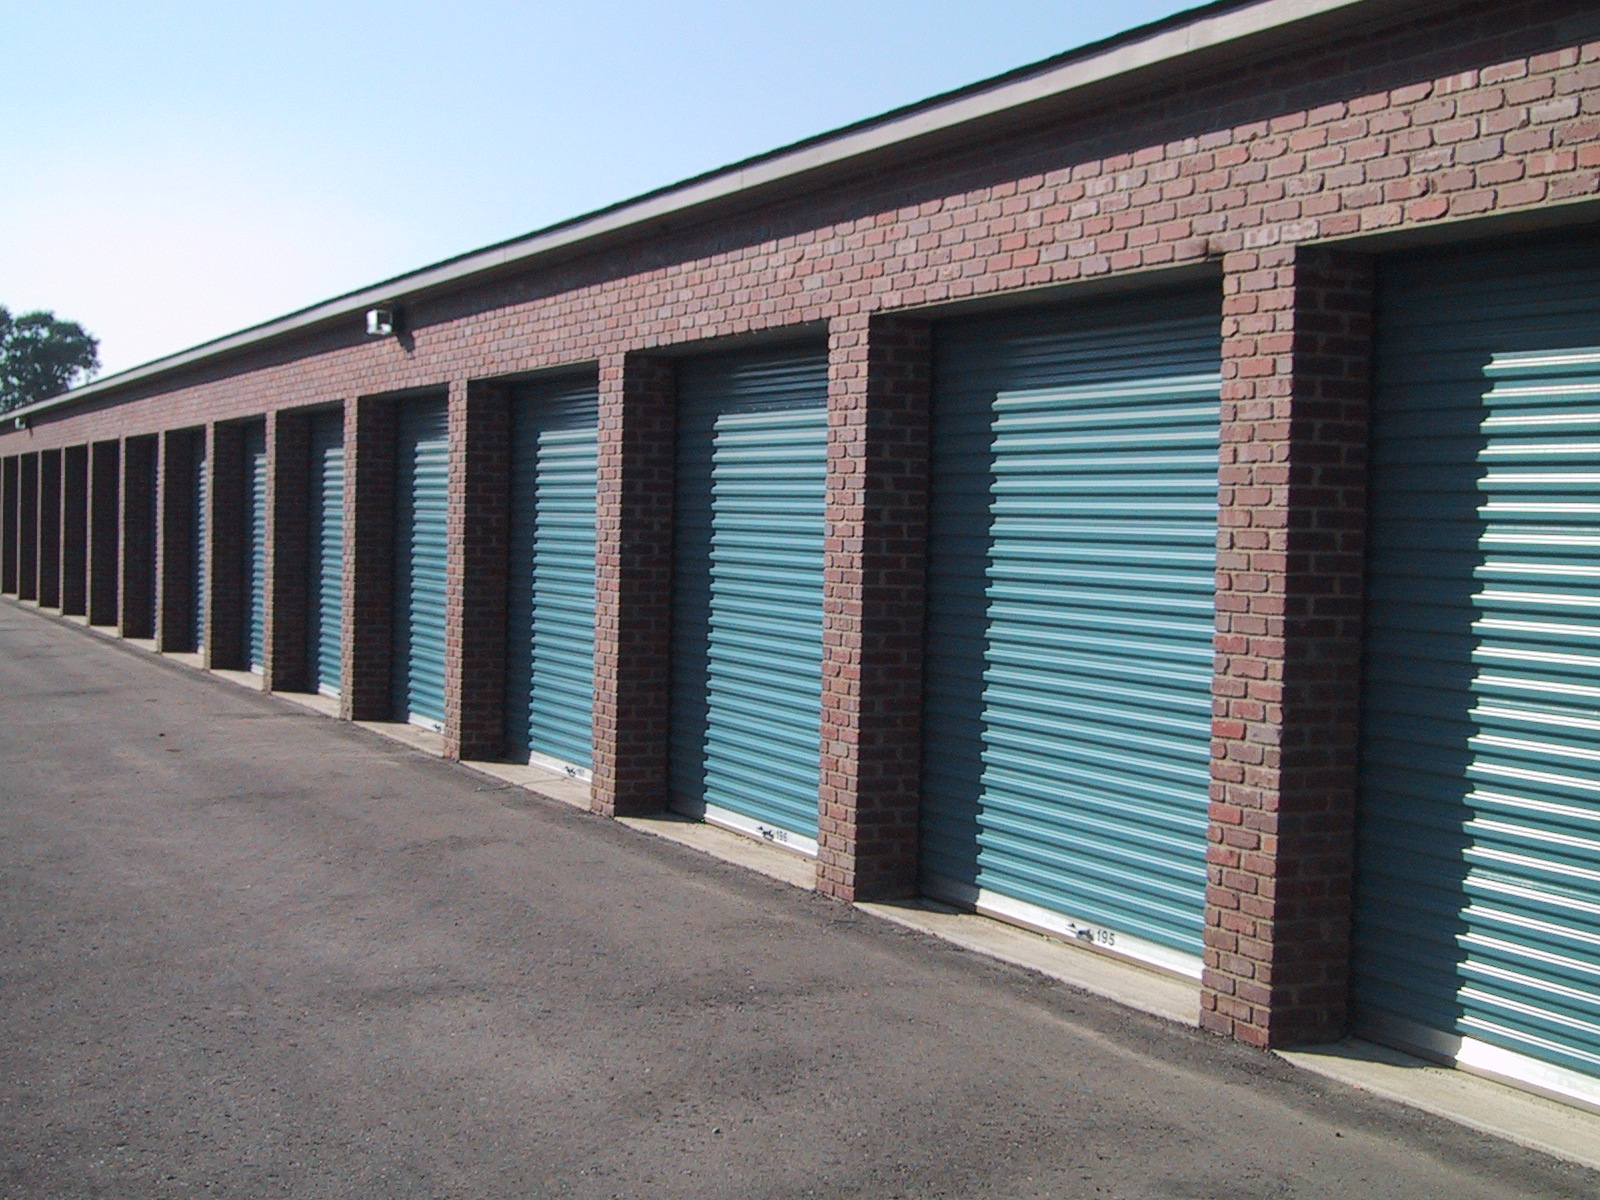 Storage Unit Cost Financial Projections Prove Self Storage Is A Great